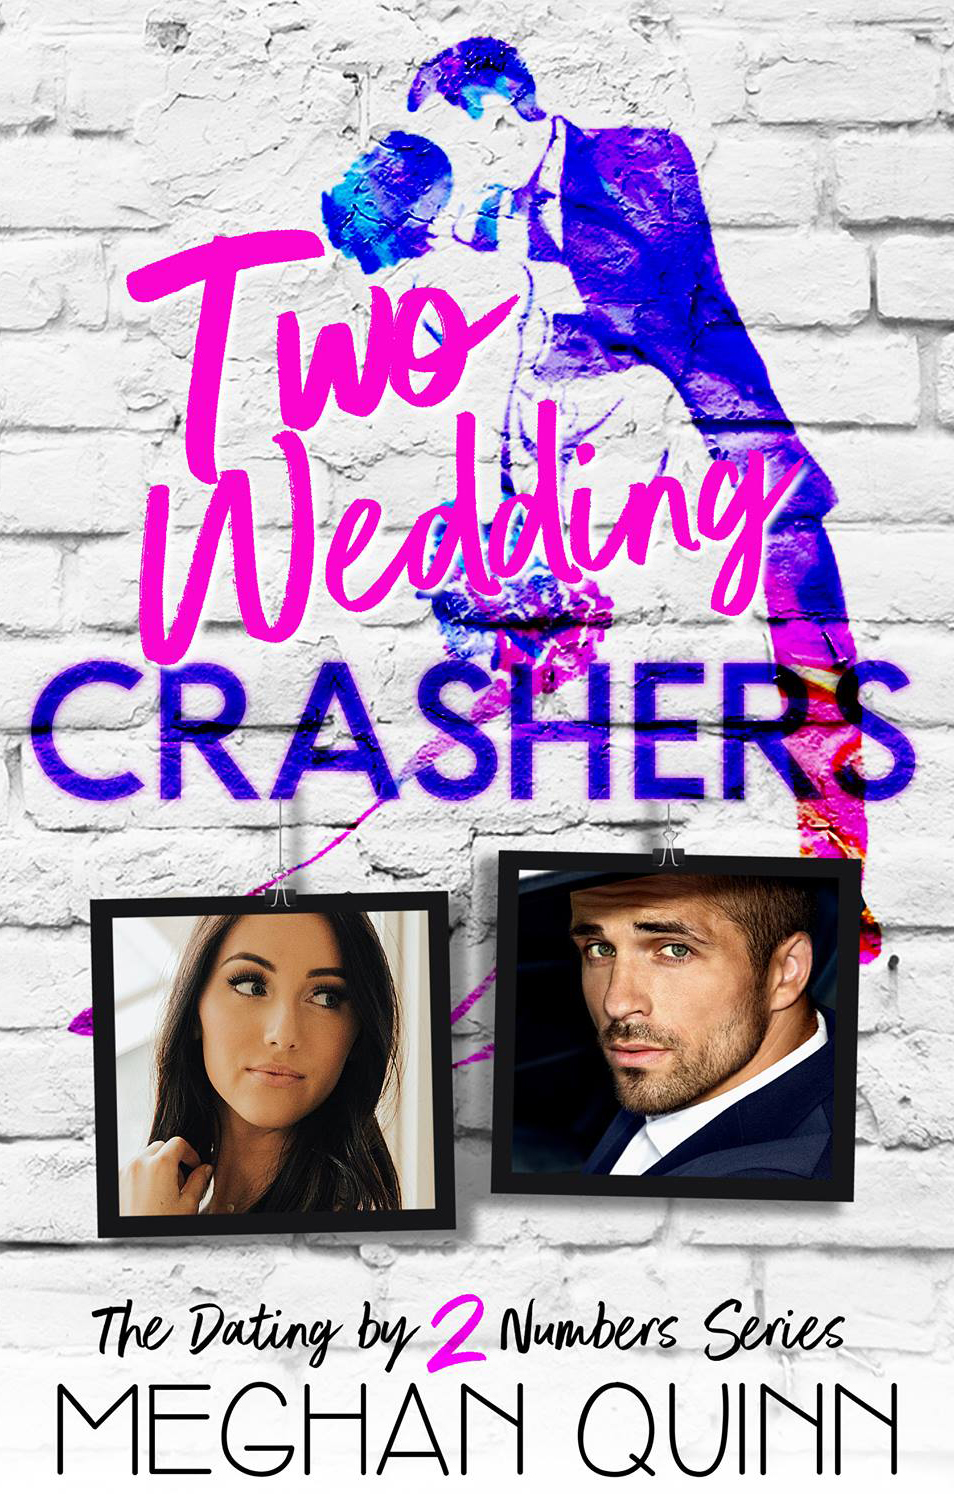 Two Wedding Crashers by Meghan Quinn